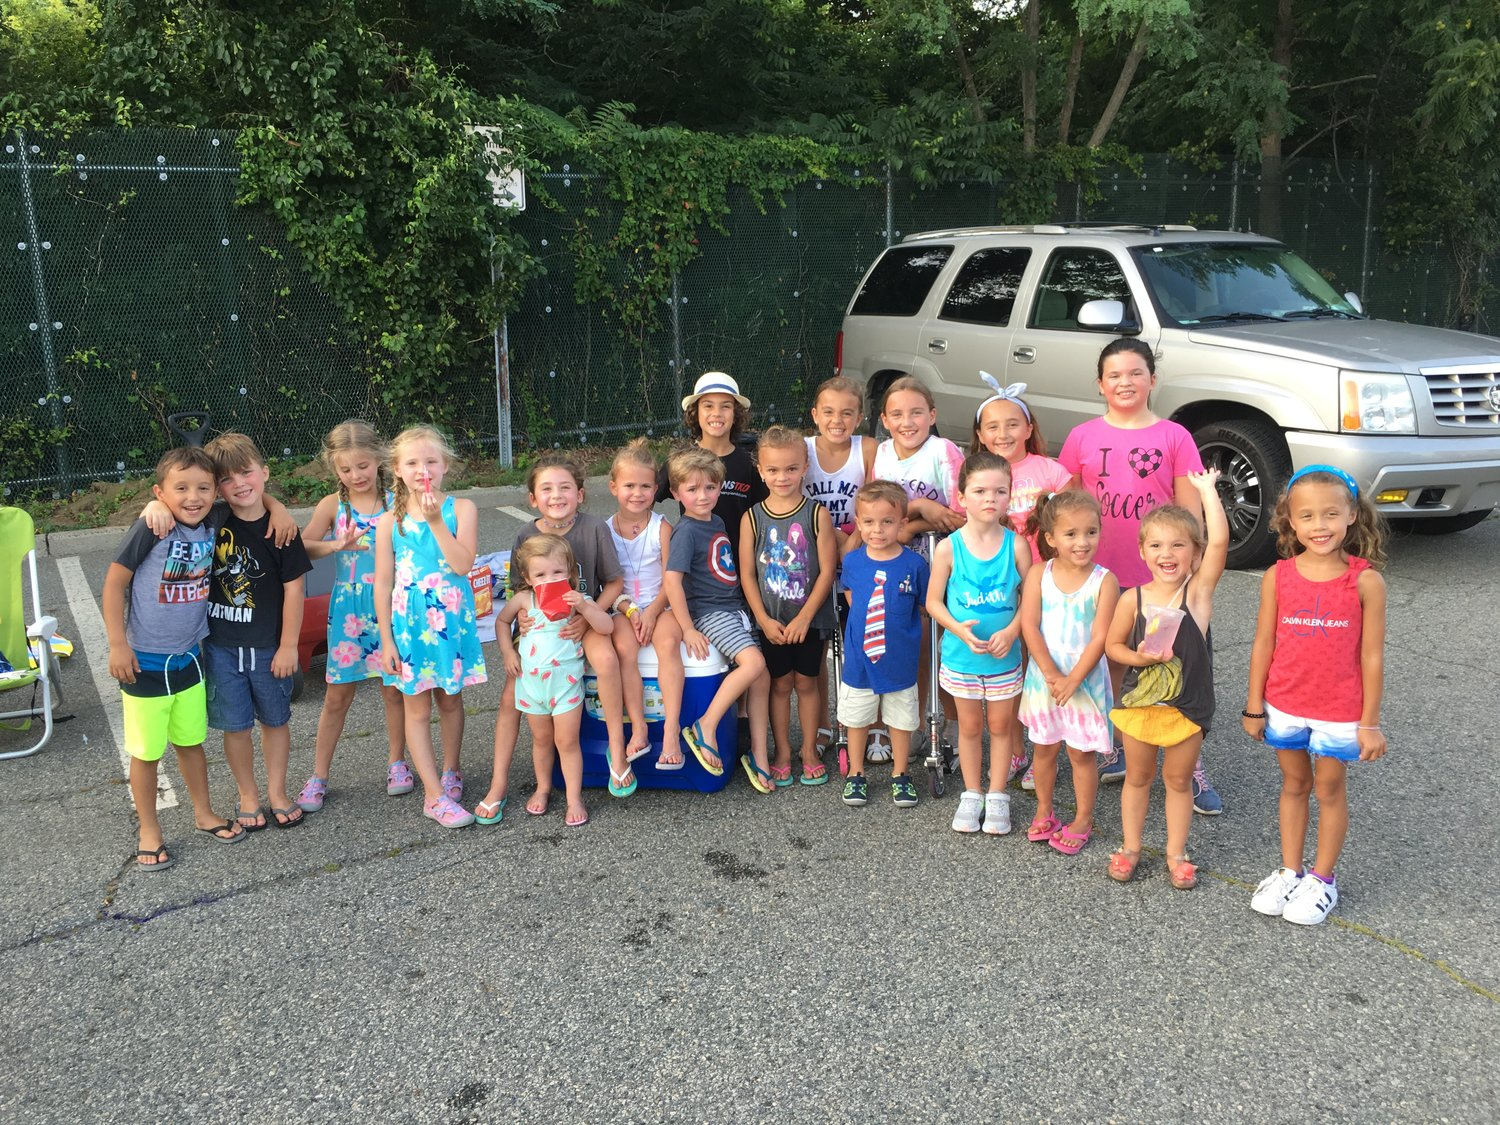 A group of local children enjoyed food and fun at the third of five Seaford Saturday Nights, on July 20, in the Long Island Rail Road train station parking lot.